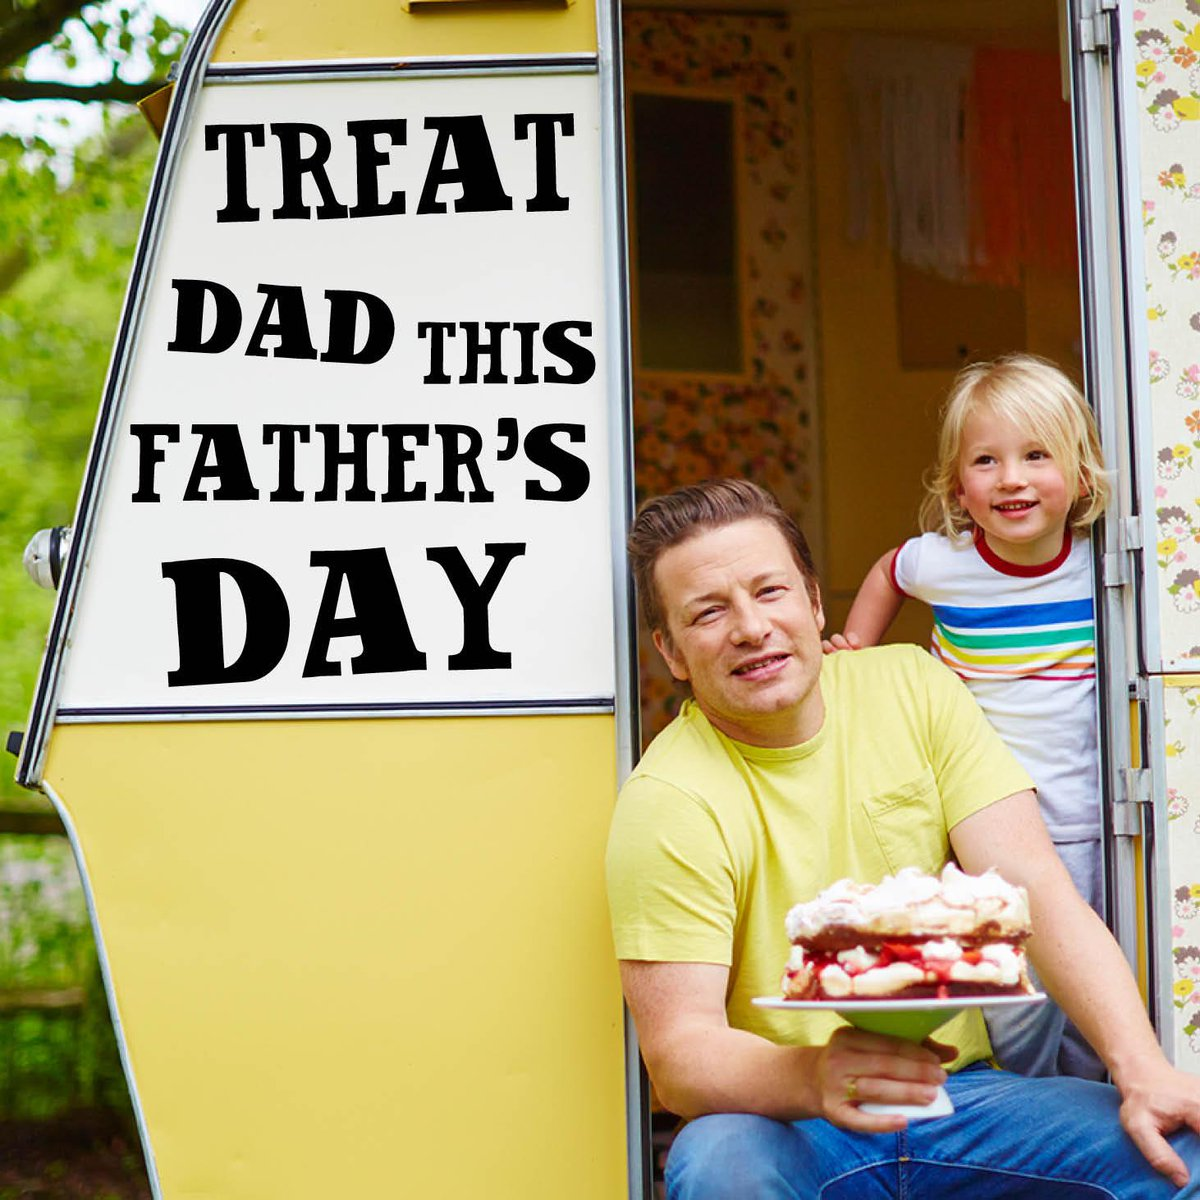 RT @JamieMagazine: Treat your dad this #FathersDay! Save 40% on a subscription, wherever you are in the world. http://t.co/nSNPvBJMRp http:…